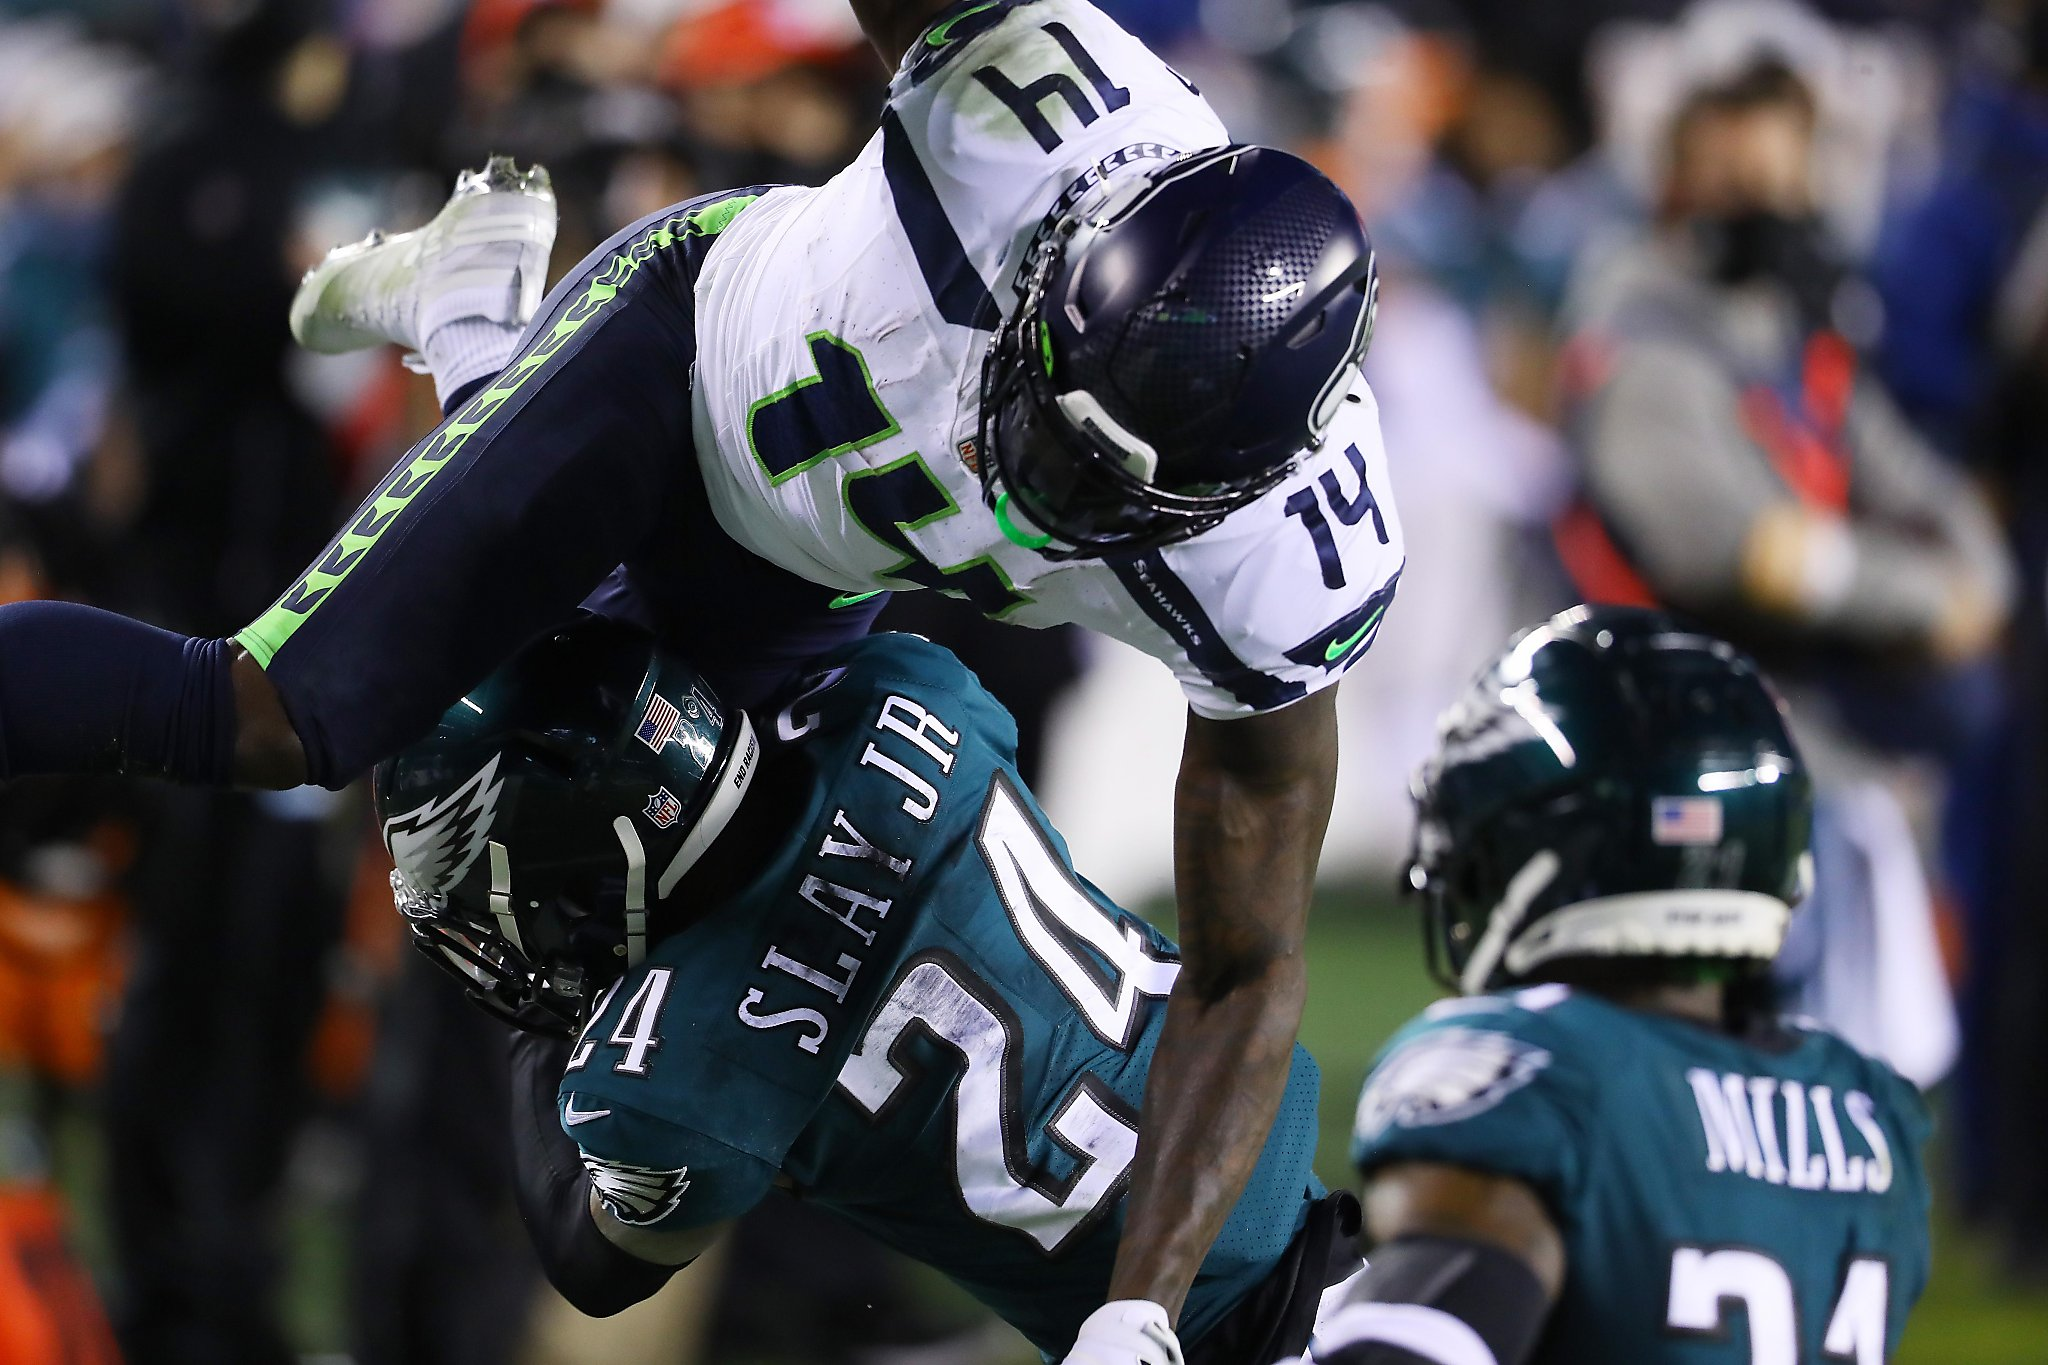 DK Metcalf, Russell Wilson lead Seahawks over Eagles 23-17